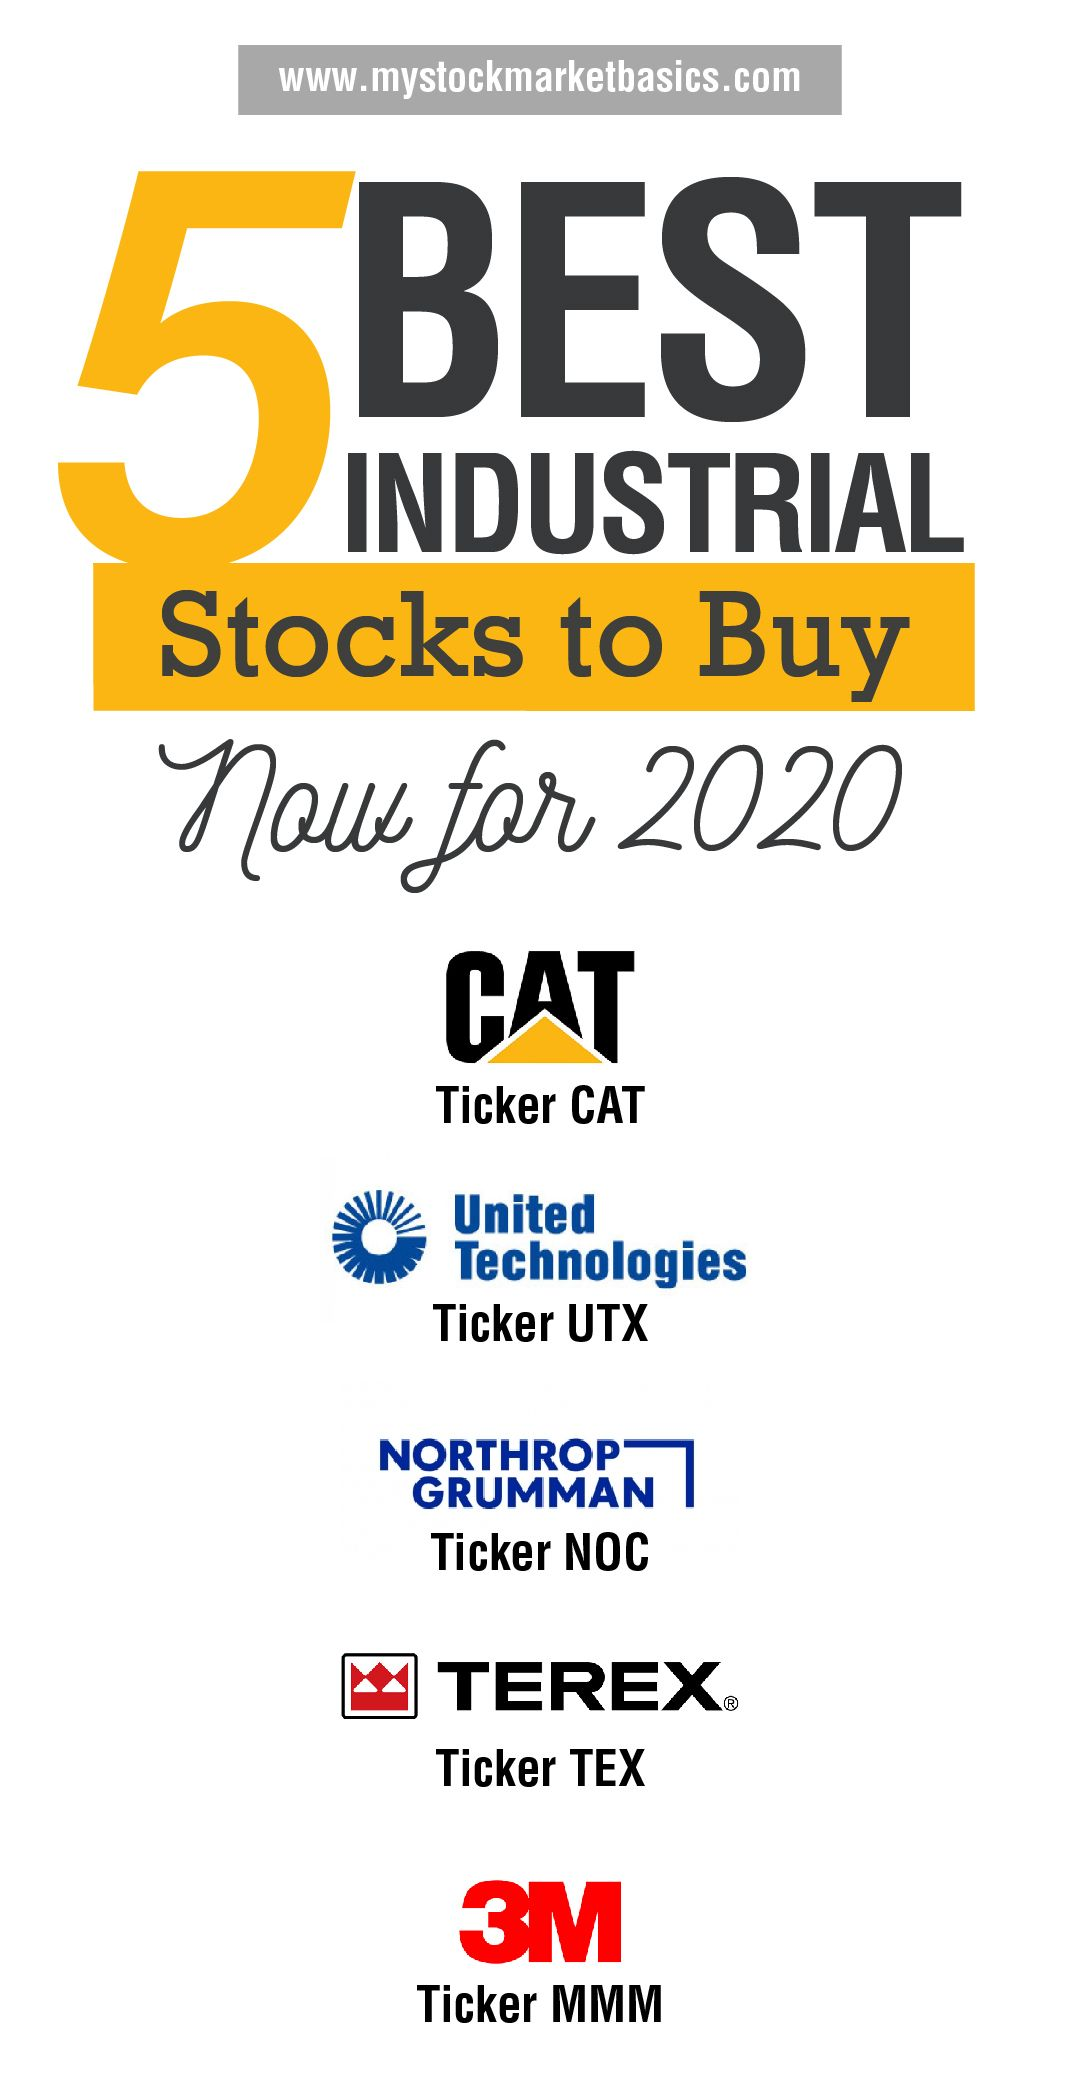 5 Best Industrial Stocks To Buy Now For 2020 In 2020 Finance Investing Investing In Stocks Buy Stocks